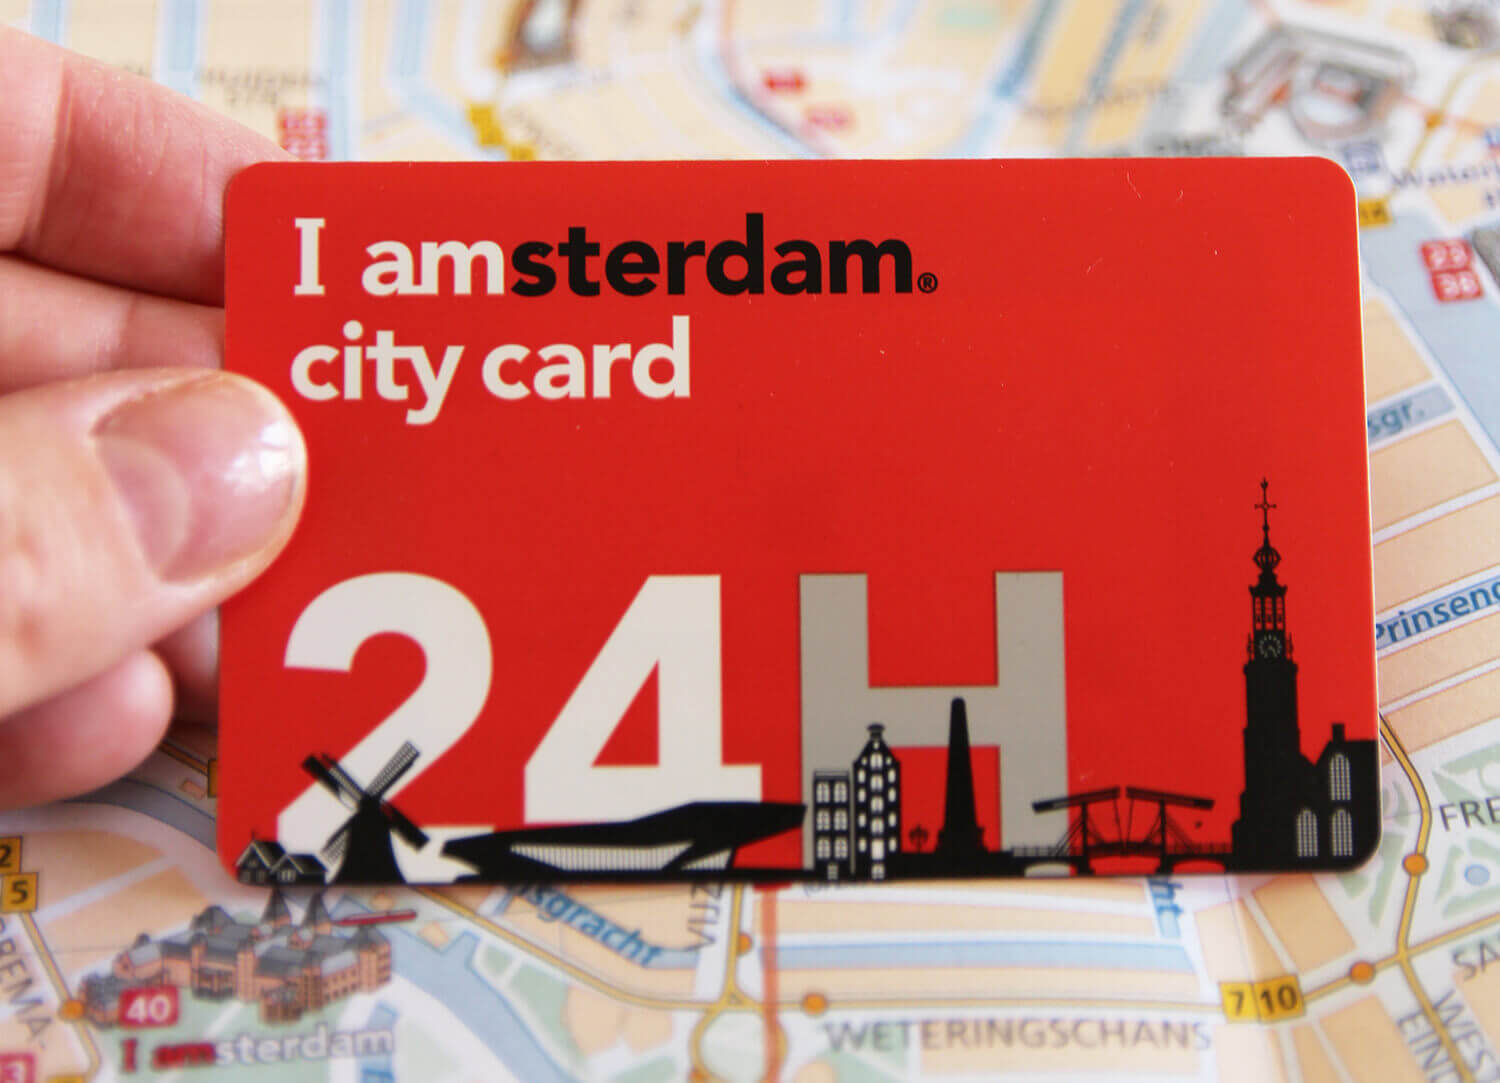 Amsterdam City Pass: Is the I amsterdam City Card worth it? : As the